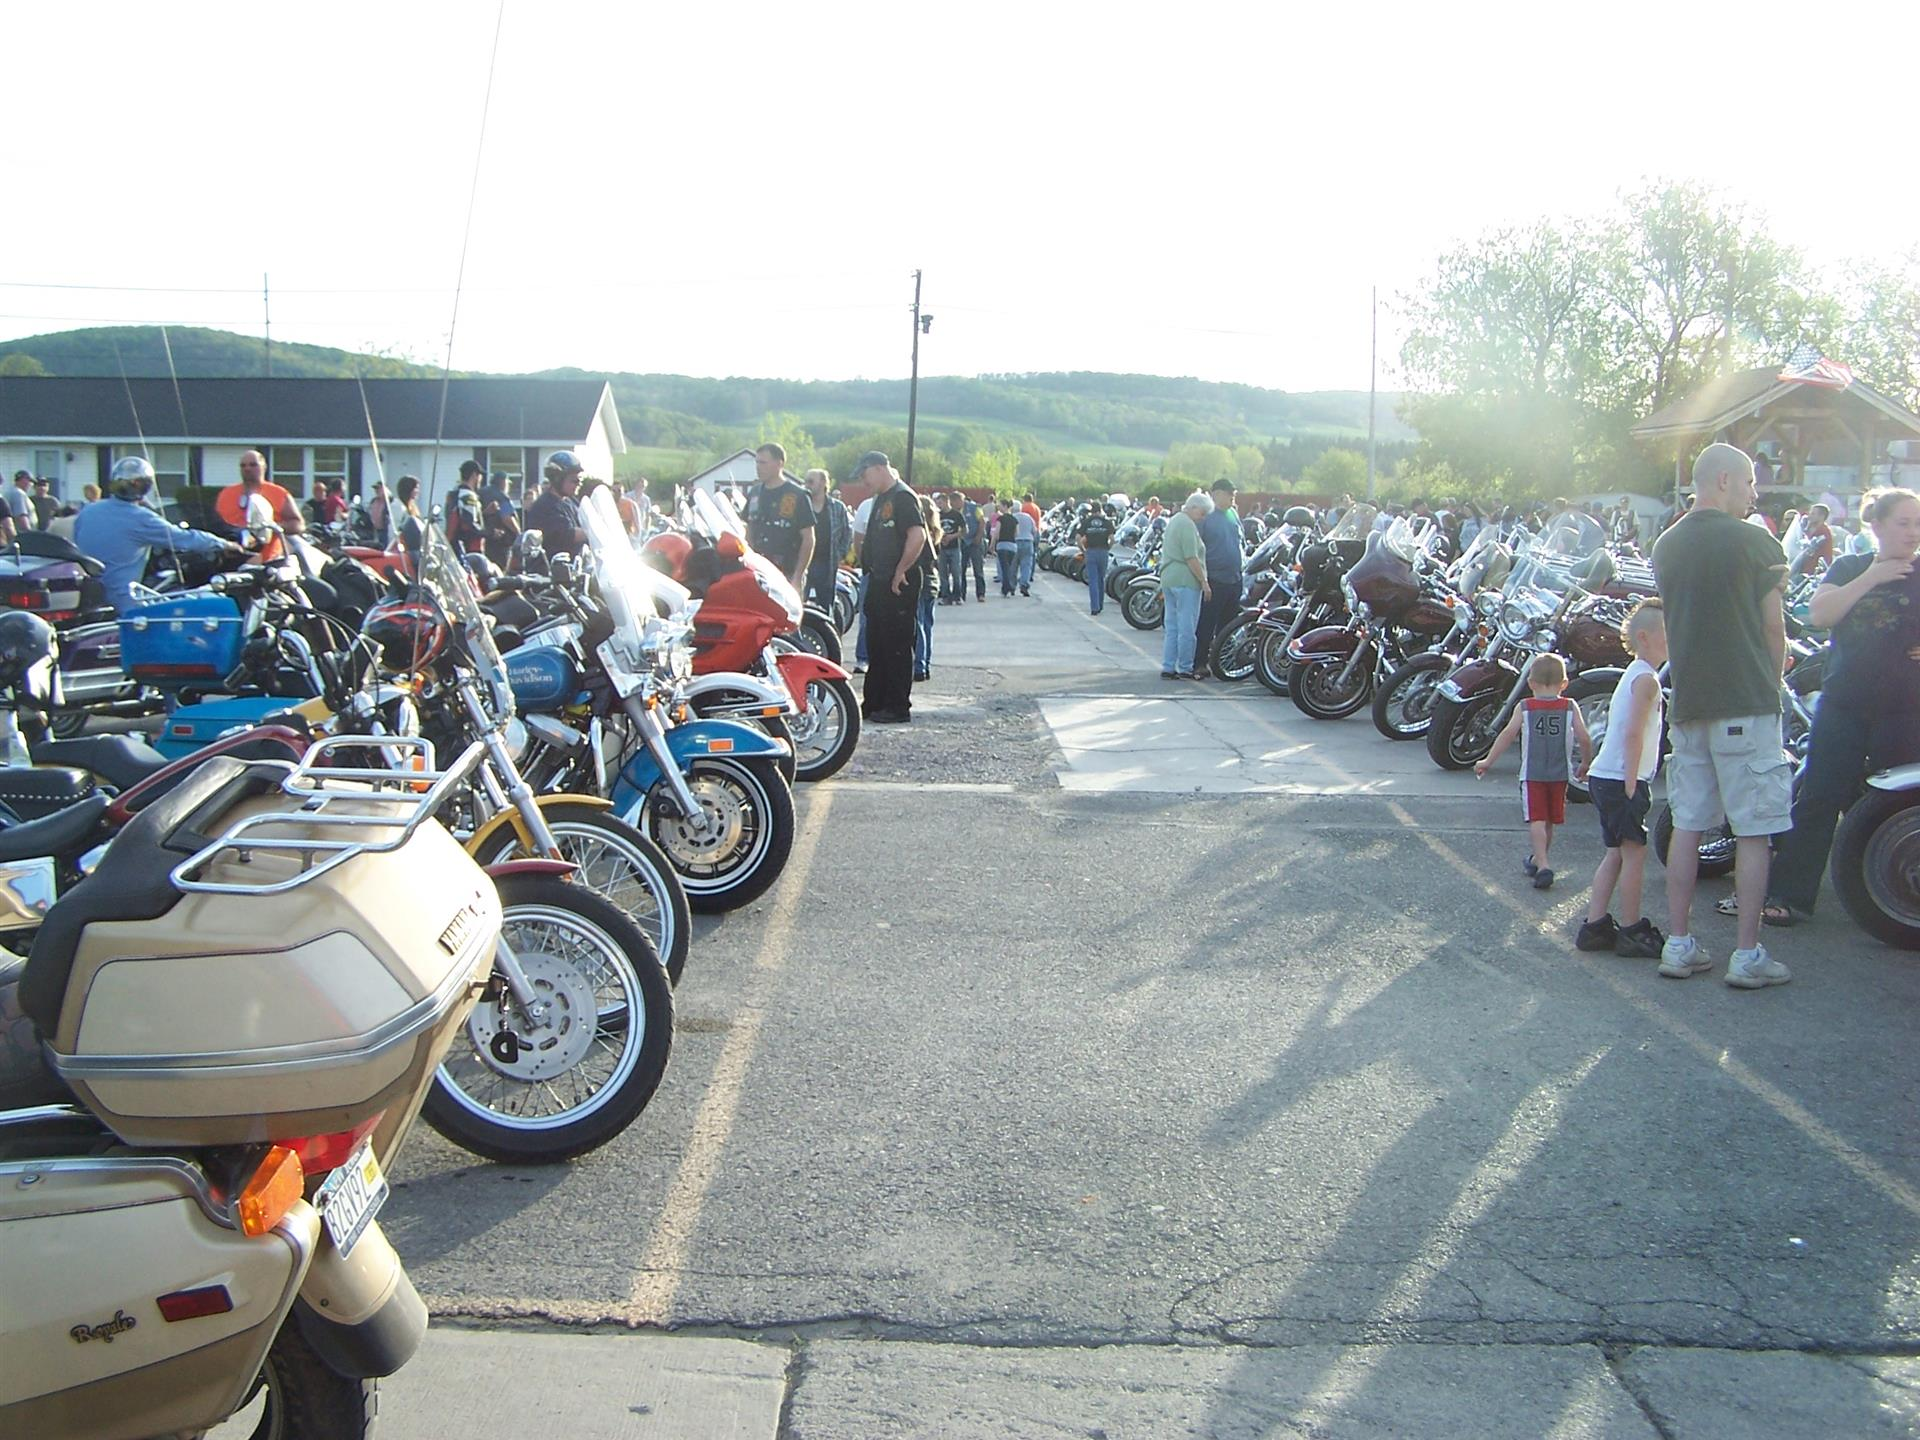 Parking lot with motorcycles